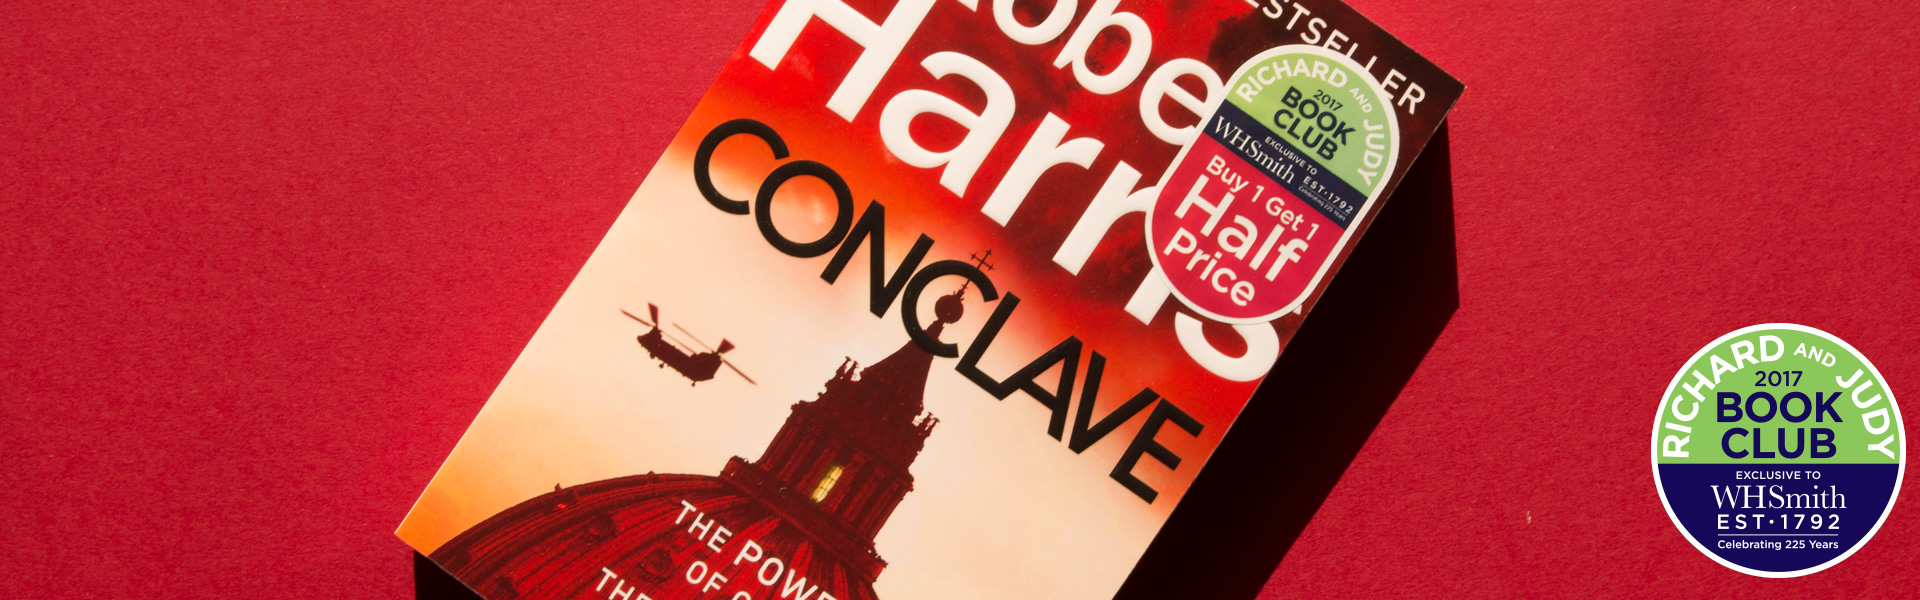 Richard and Judy Introduce Conclave by Robert Harris